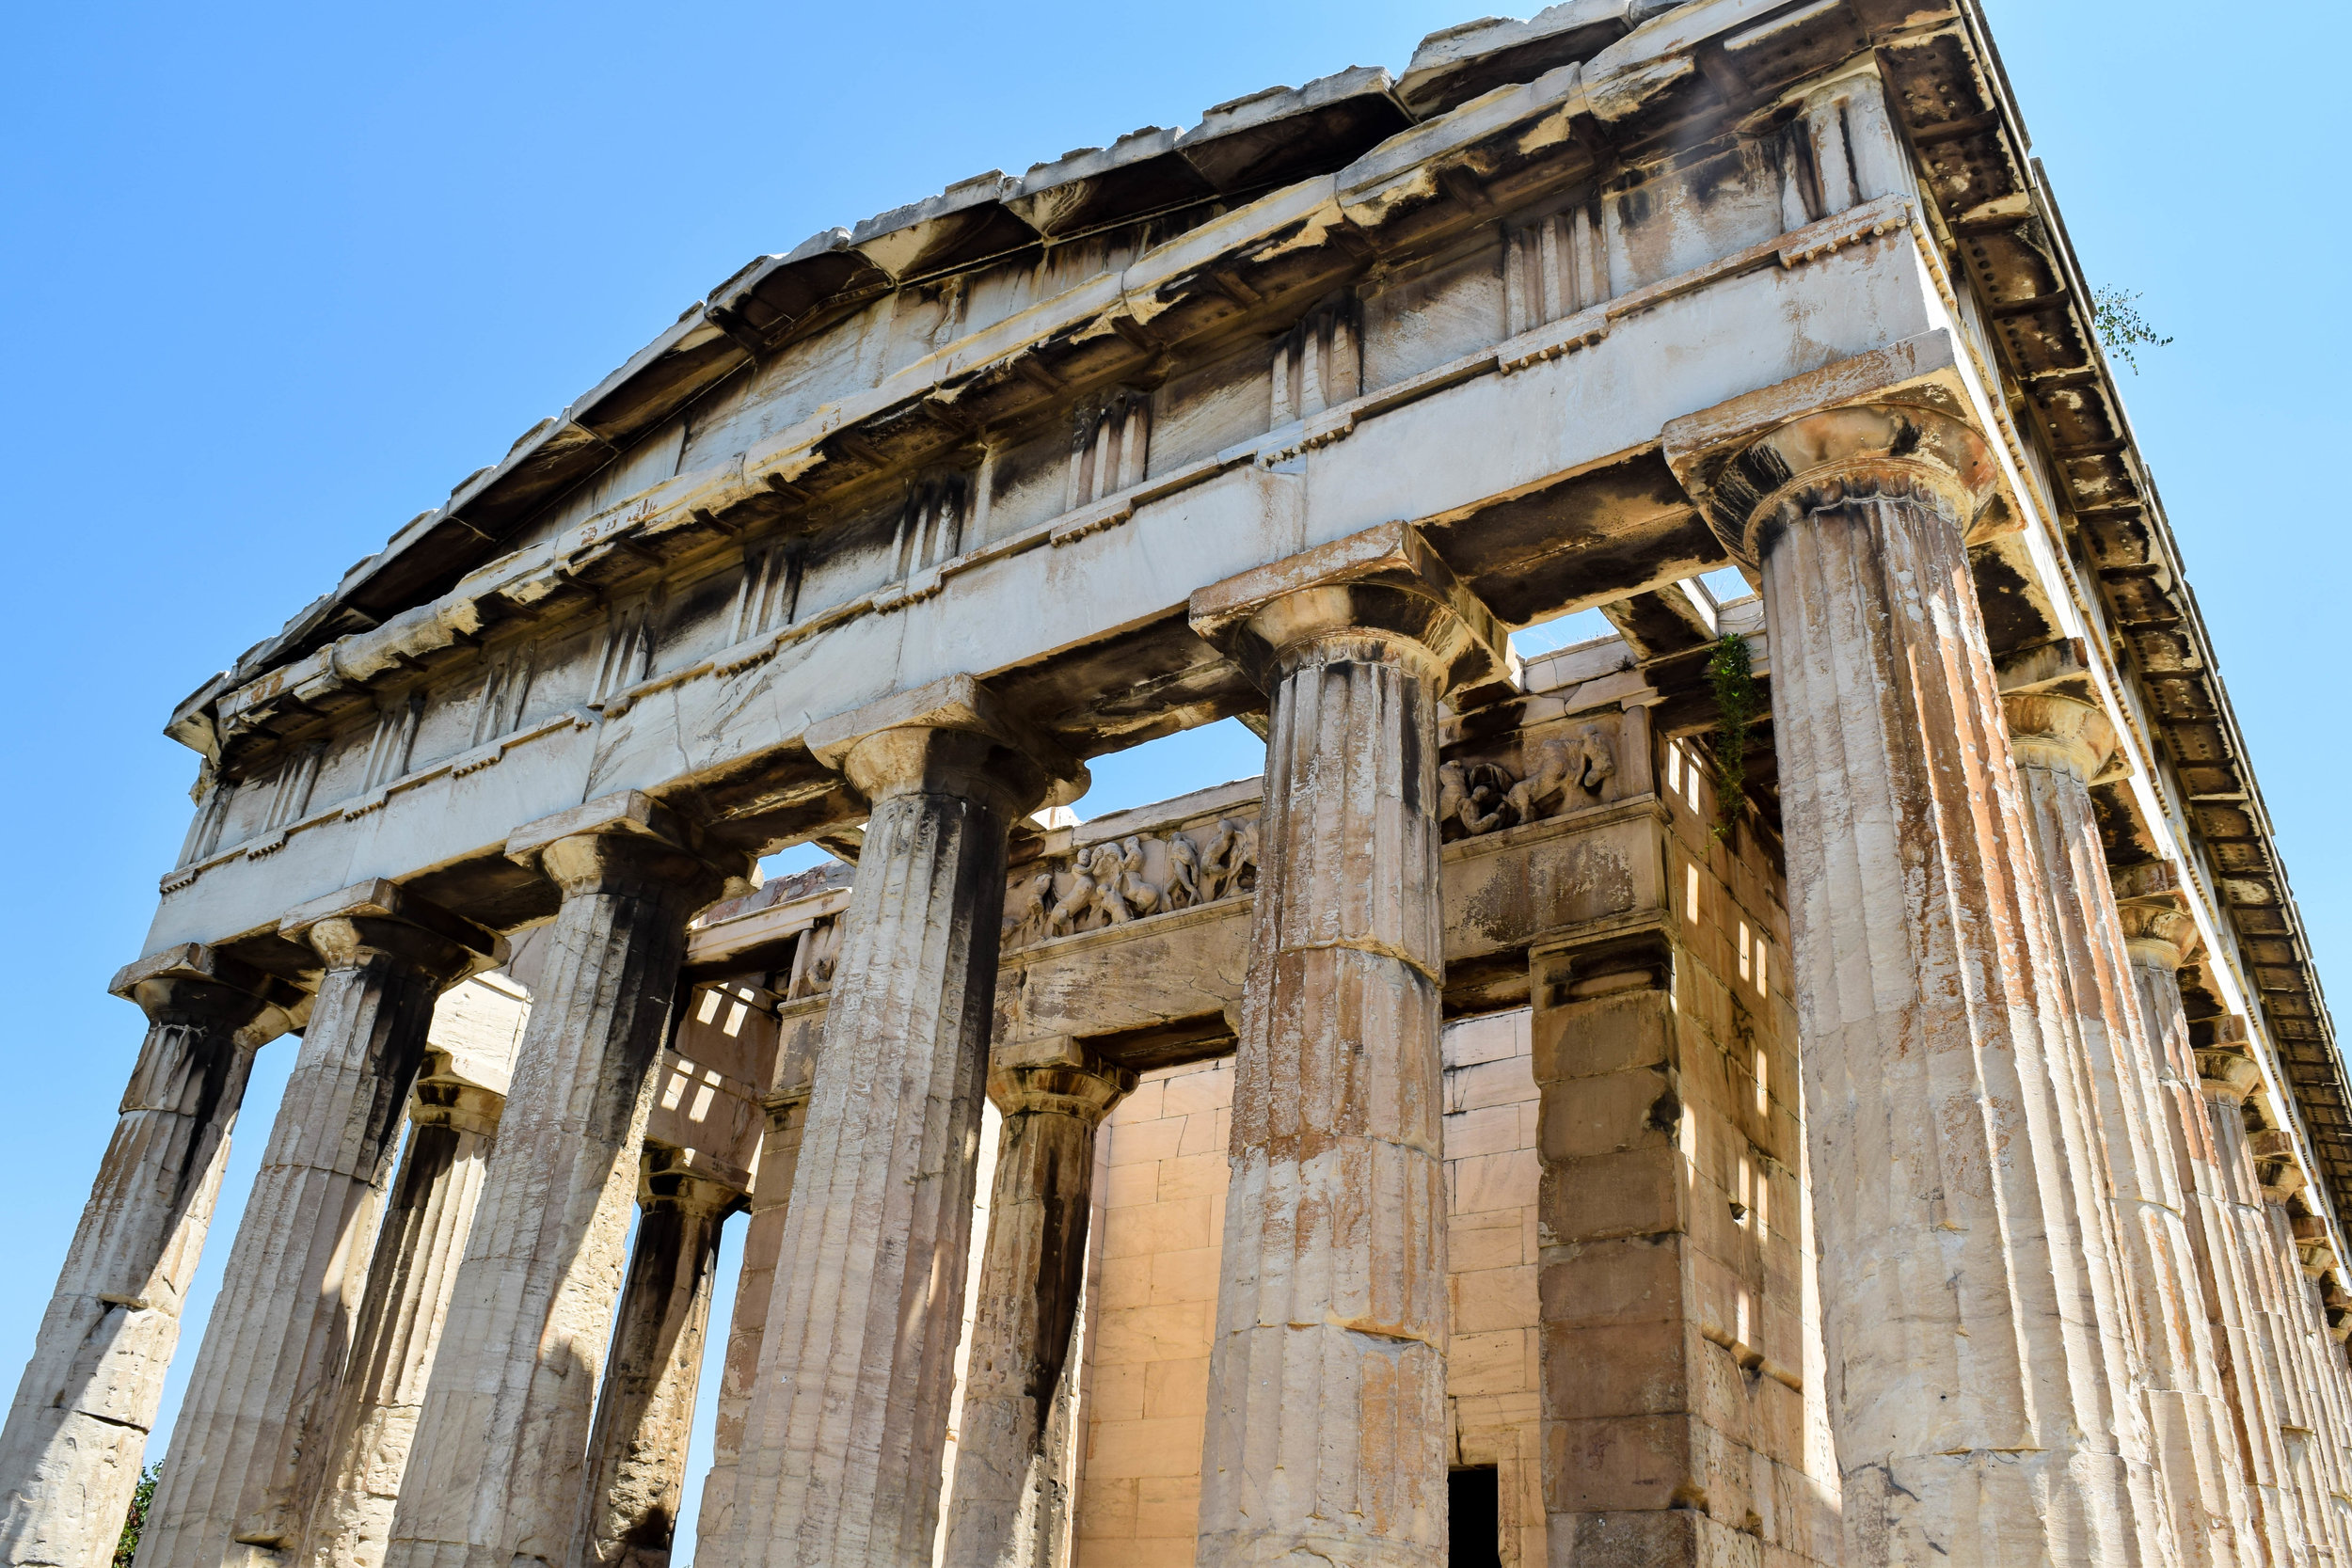 The Temple of Hephaestus at the Ancient Agora.